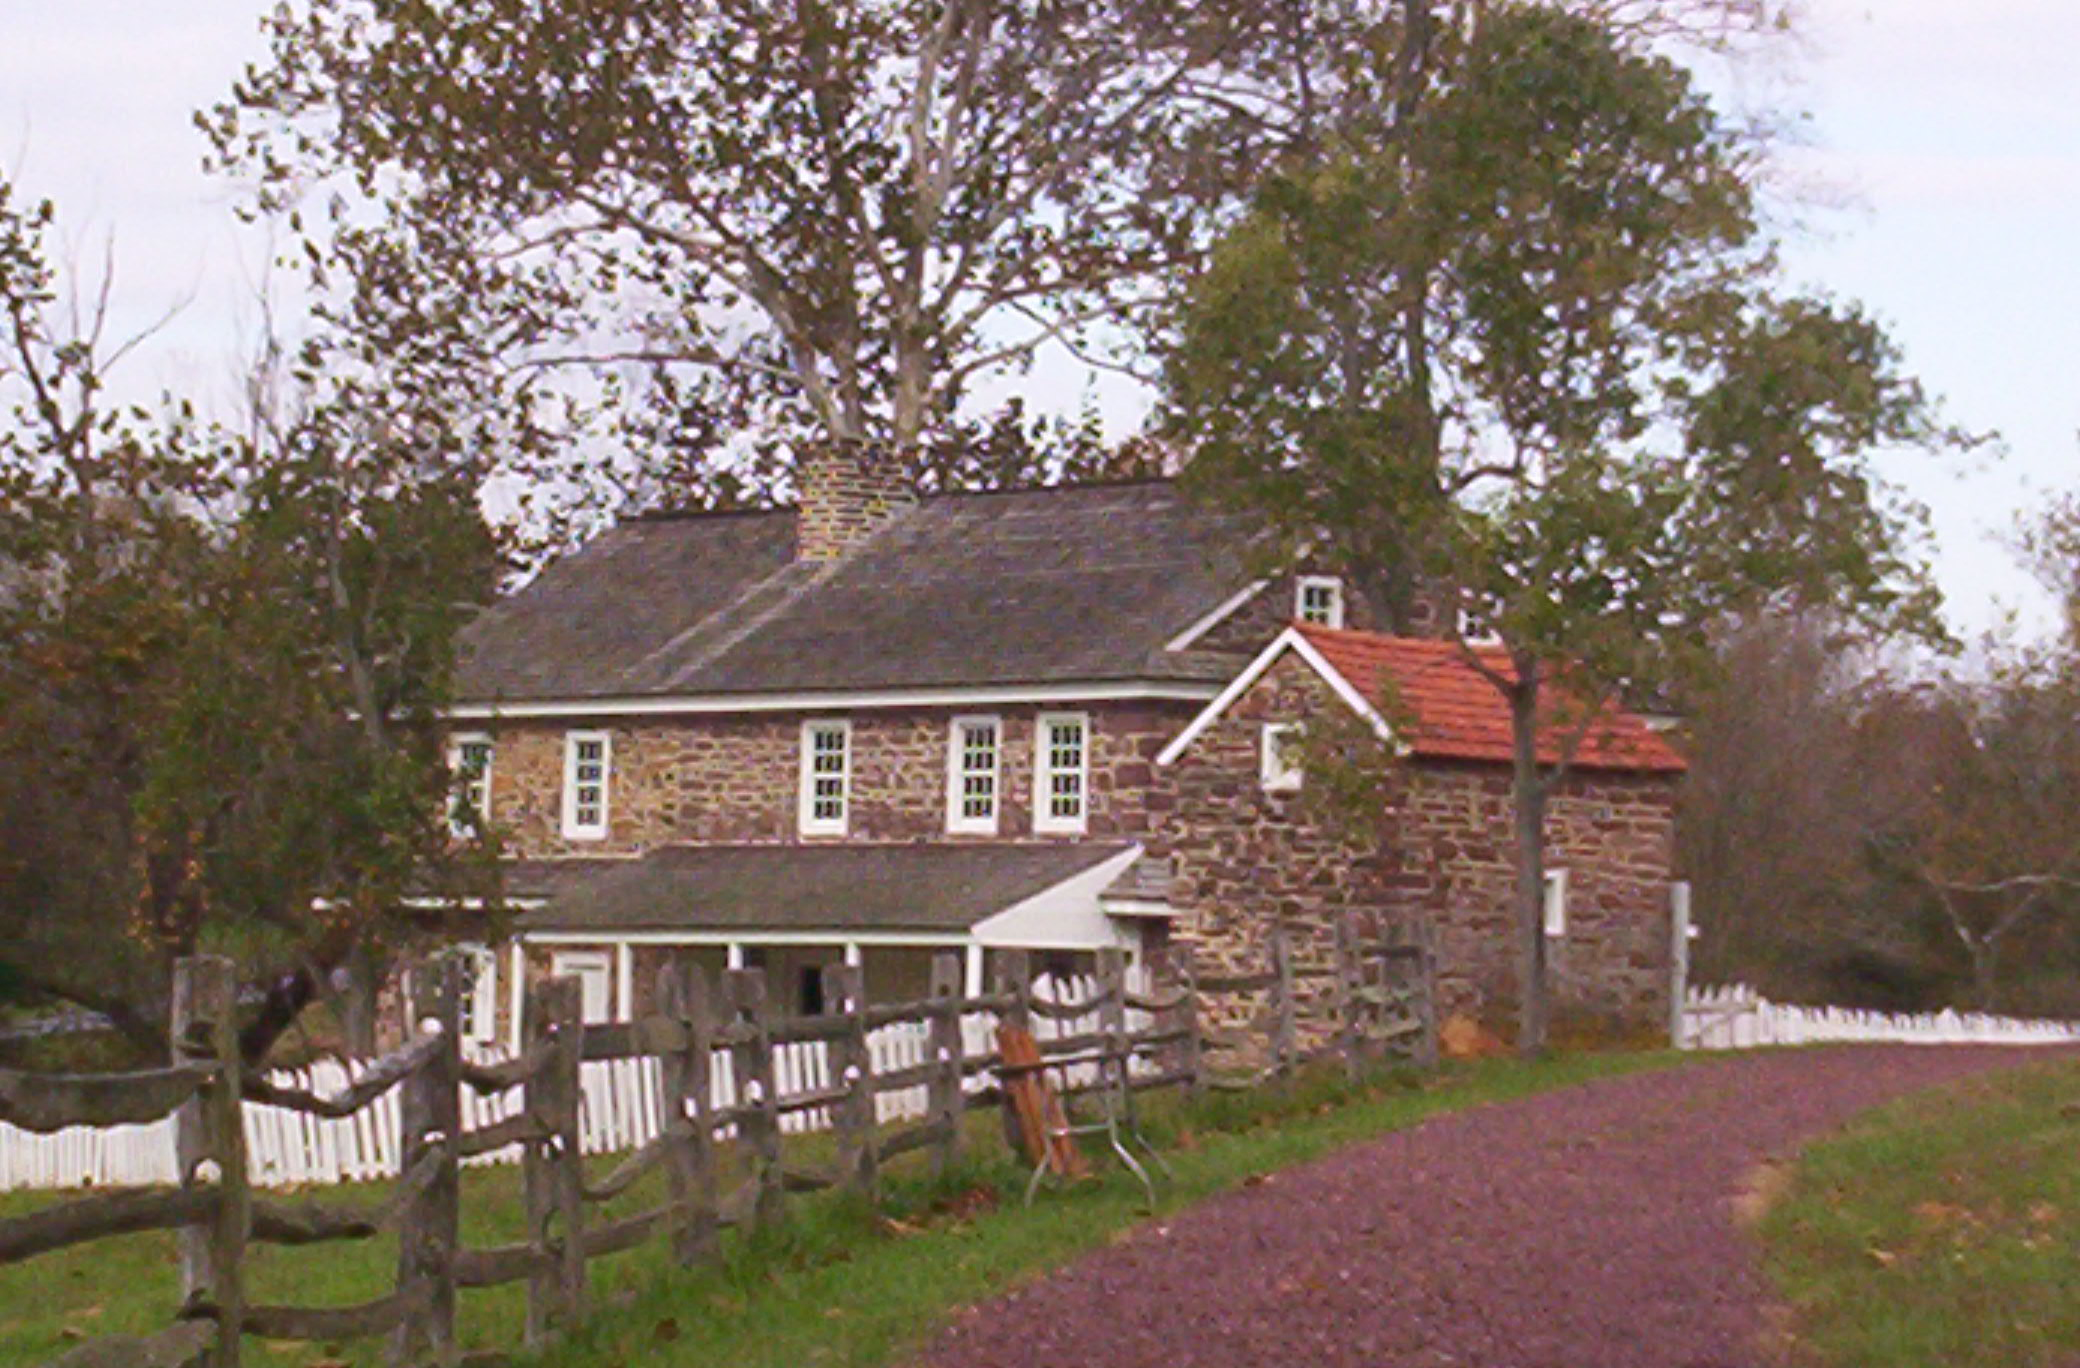 External View of Daniel Boone's Birthplace